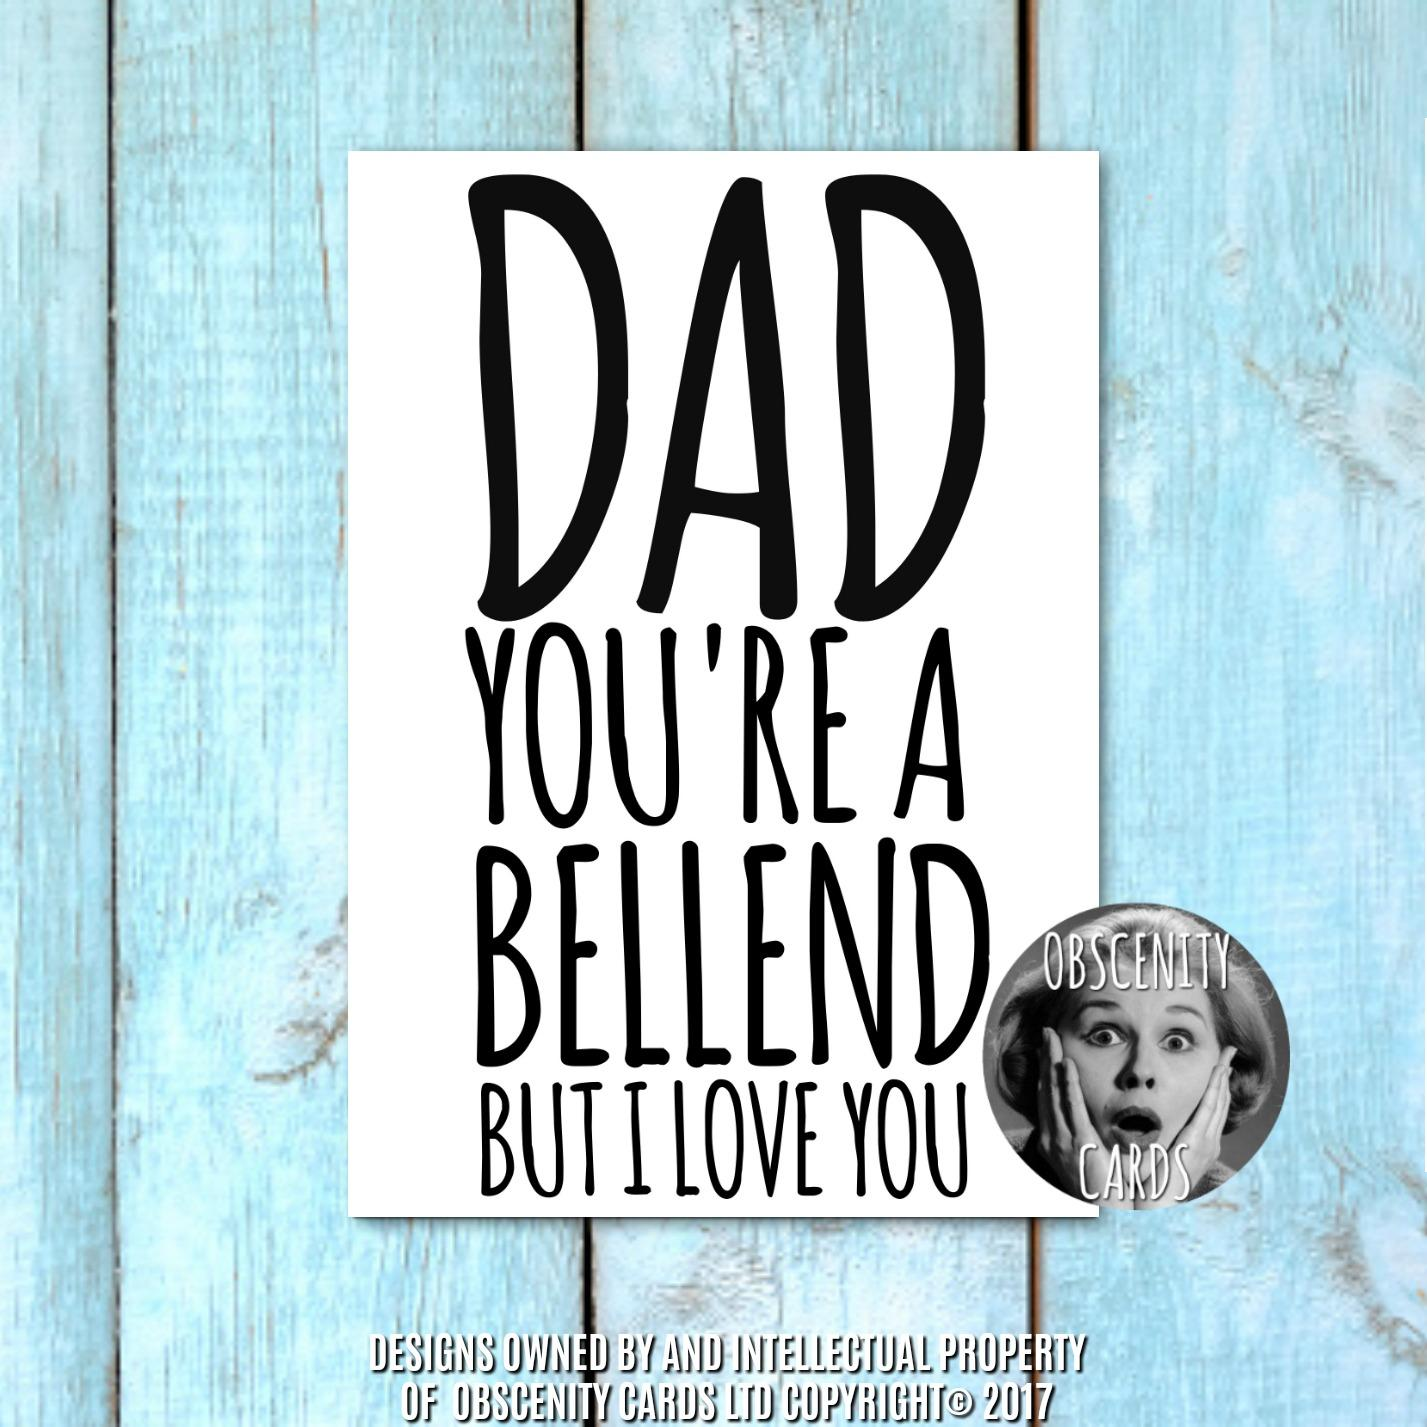 Obscene funny offensive Father's Day cards by Obscenity cards. Obscene Funny Cards, Pens, Party Hats, Key rings, Magnets, Lighters & Loads More!